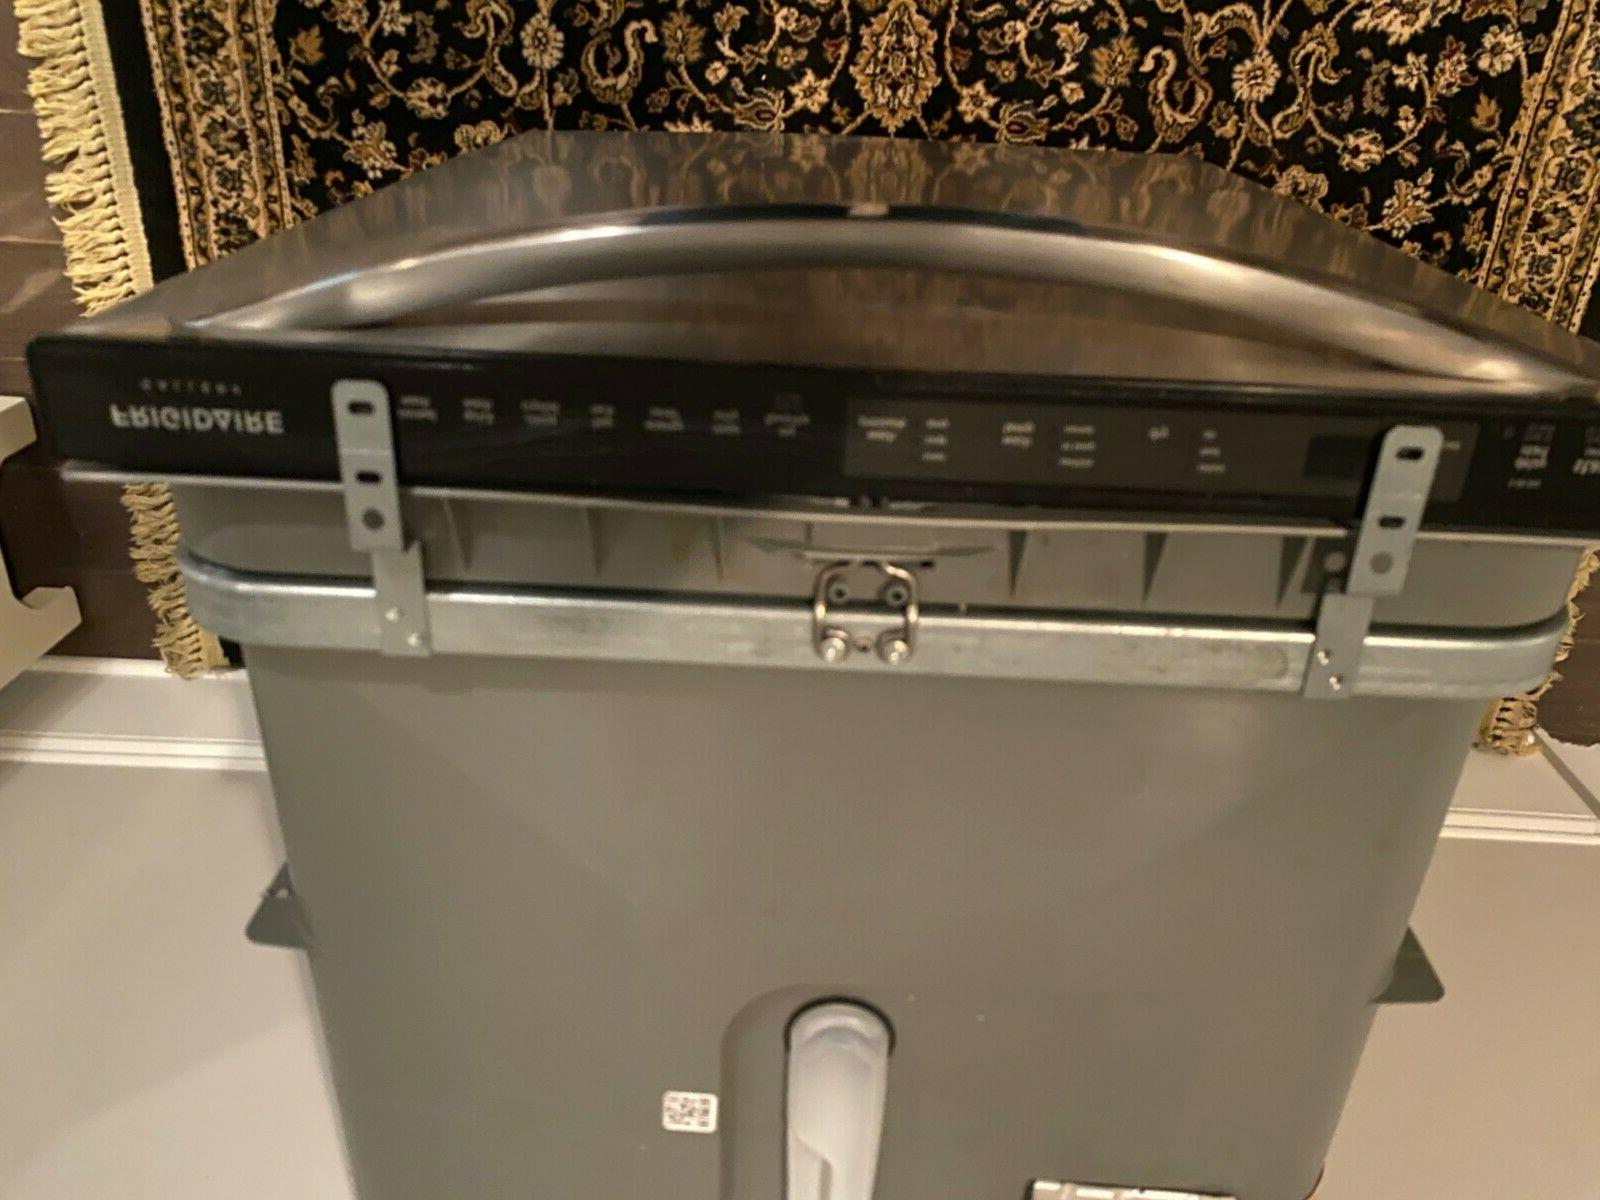 Frigidaire Stainless Steel Built-in Dishwasher